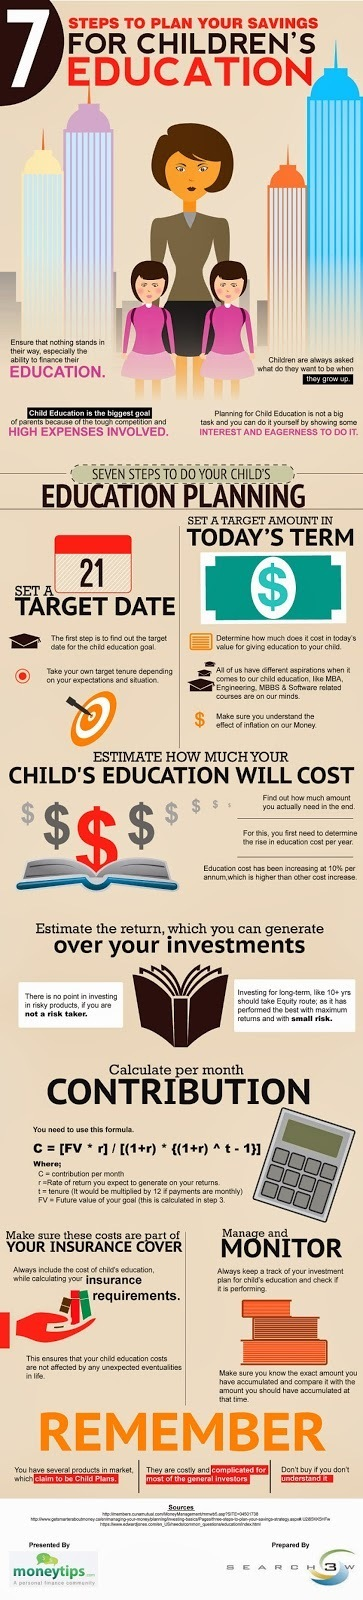 7 Steps to Plan your Savings for Children's Education | moneytips | Scoop.it